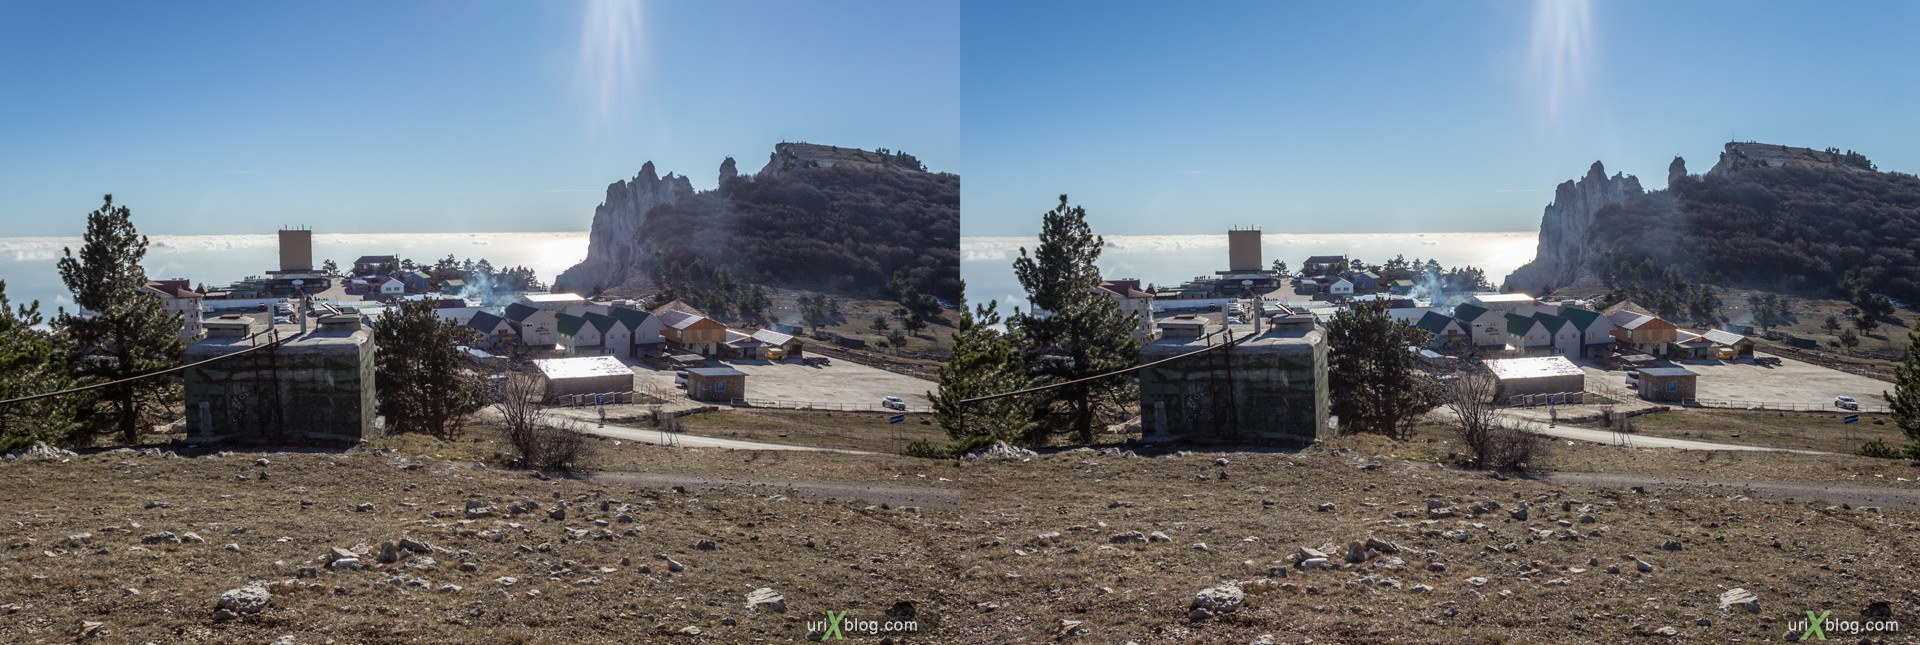 2012, Ai-Petri, mountains, Crimea, Russia, Ukraine, winter, 3D, stereo pair, cross-eyed, crossview, cross view stereo pair, stereoscopic